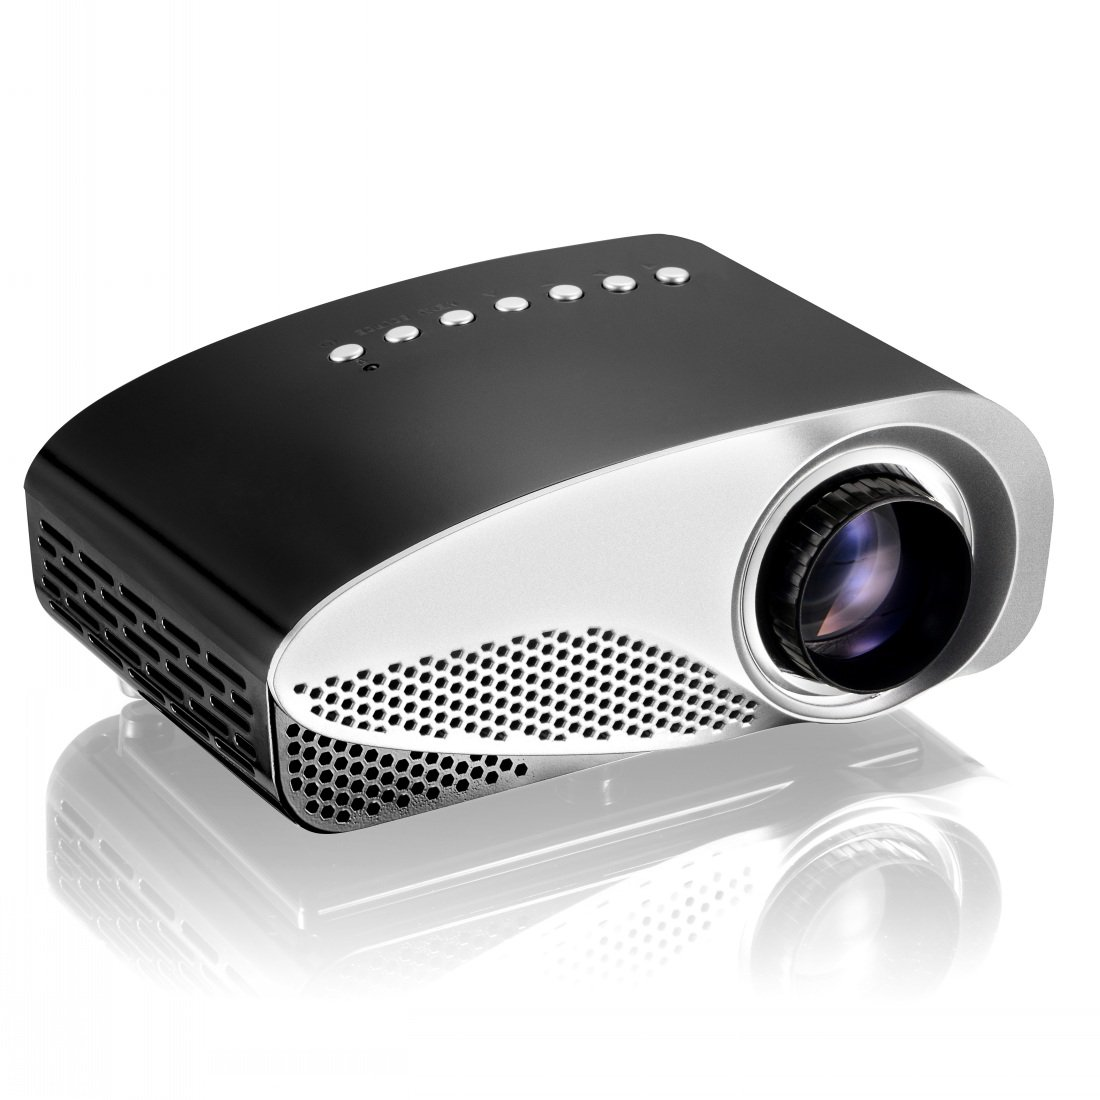 Projector, Syhonic S8 HD LED Mini Portable Multimedia Home Theater Projector Support HDMI USB SD AV VGA TV Interface HD Video Games TV Movie TXT Music Pocket Size Projector (Black)